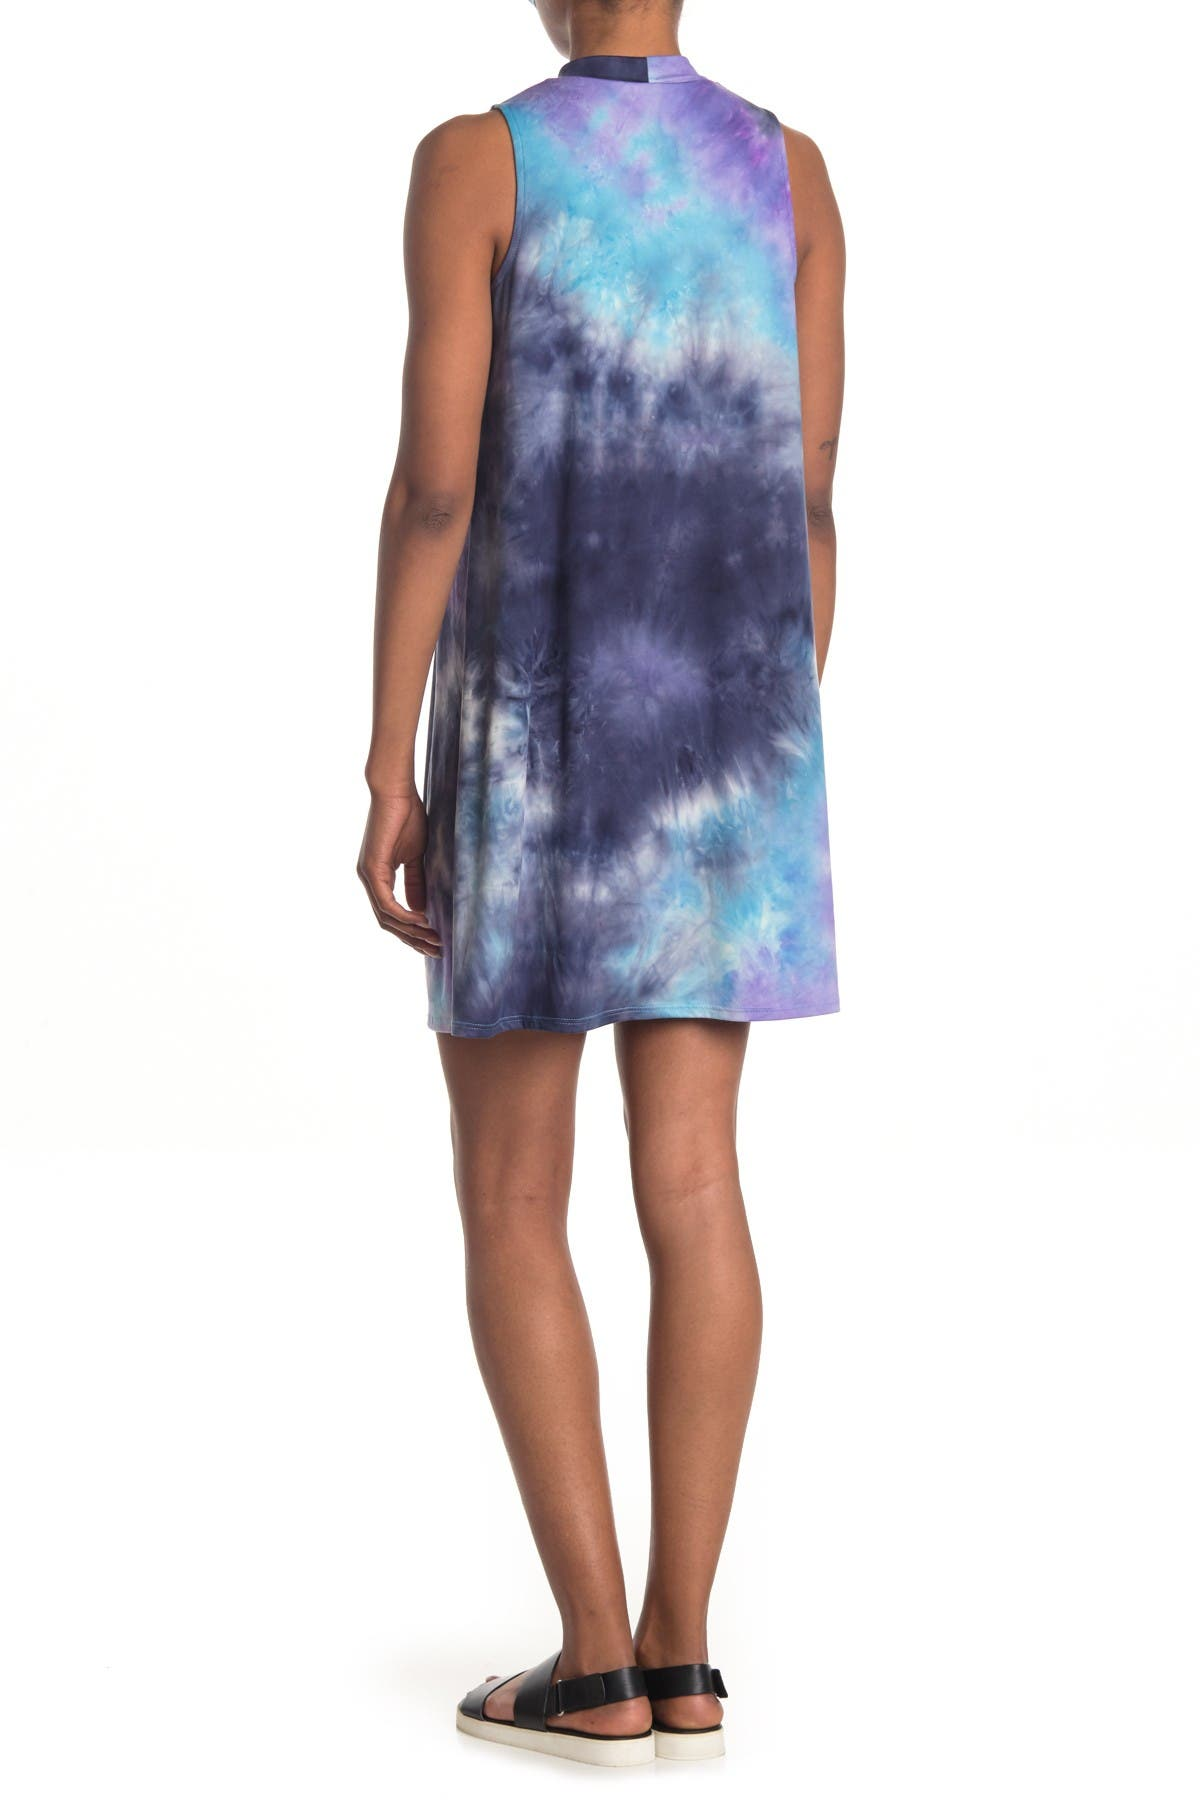 Image of TASH + SOPHIE Tie-Dye Sleeveless Shift Dress